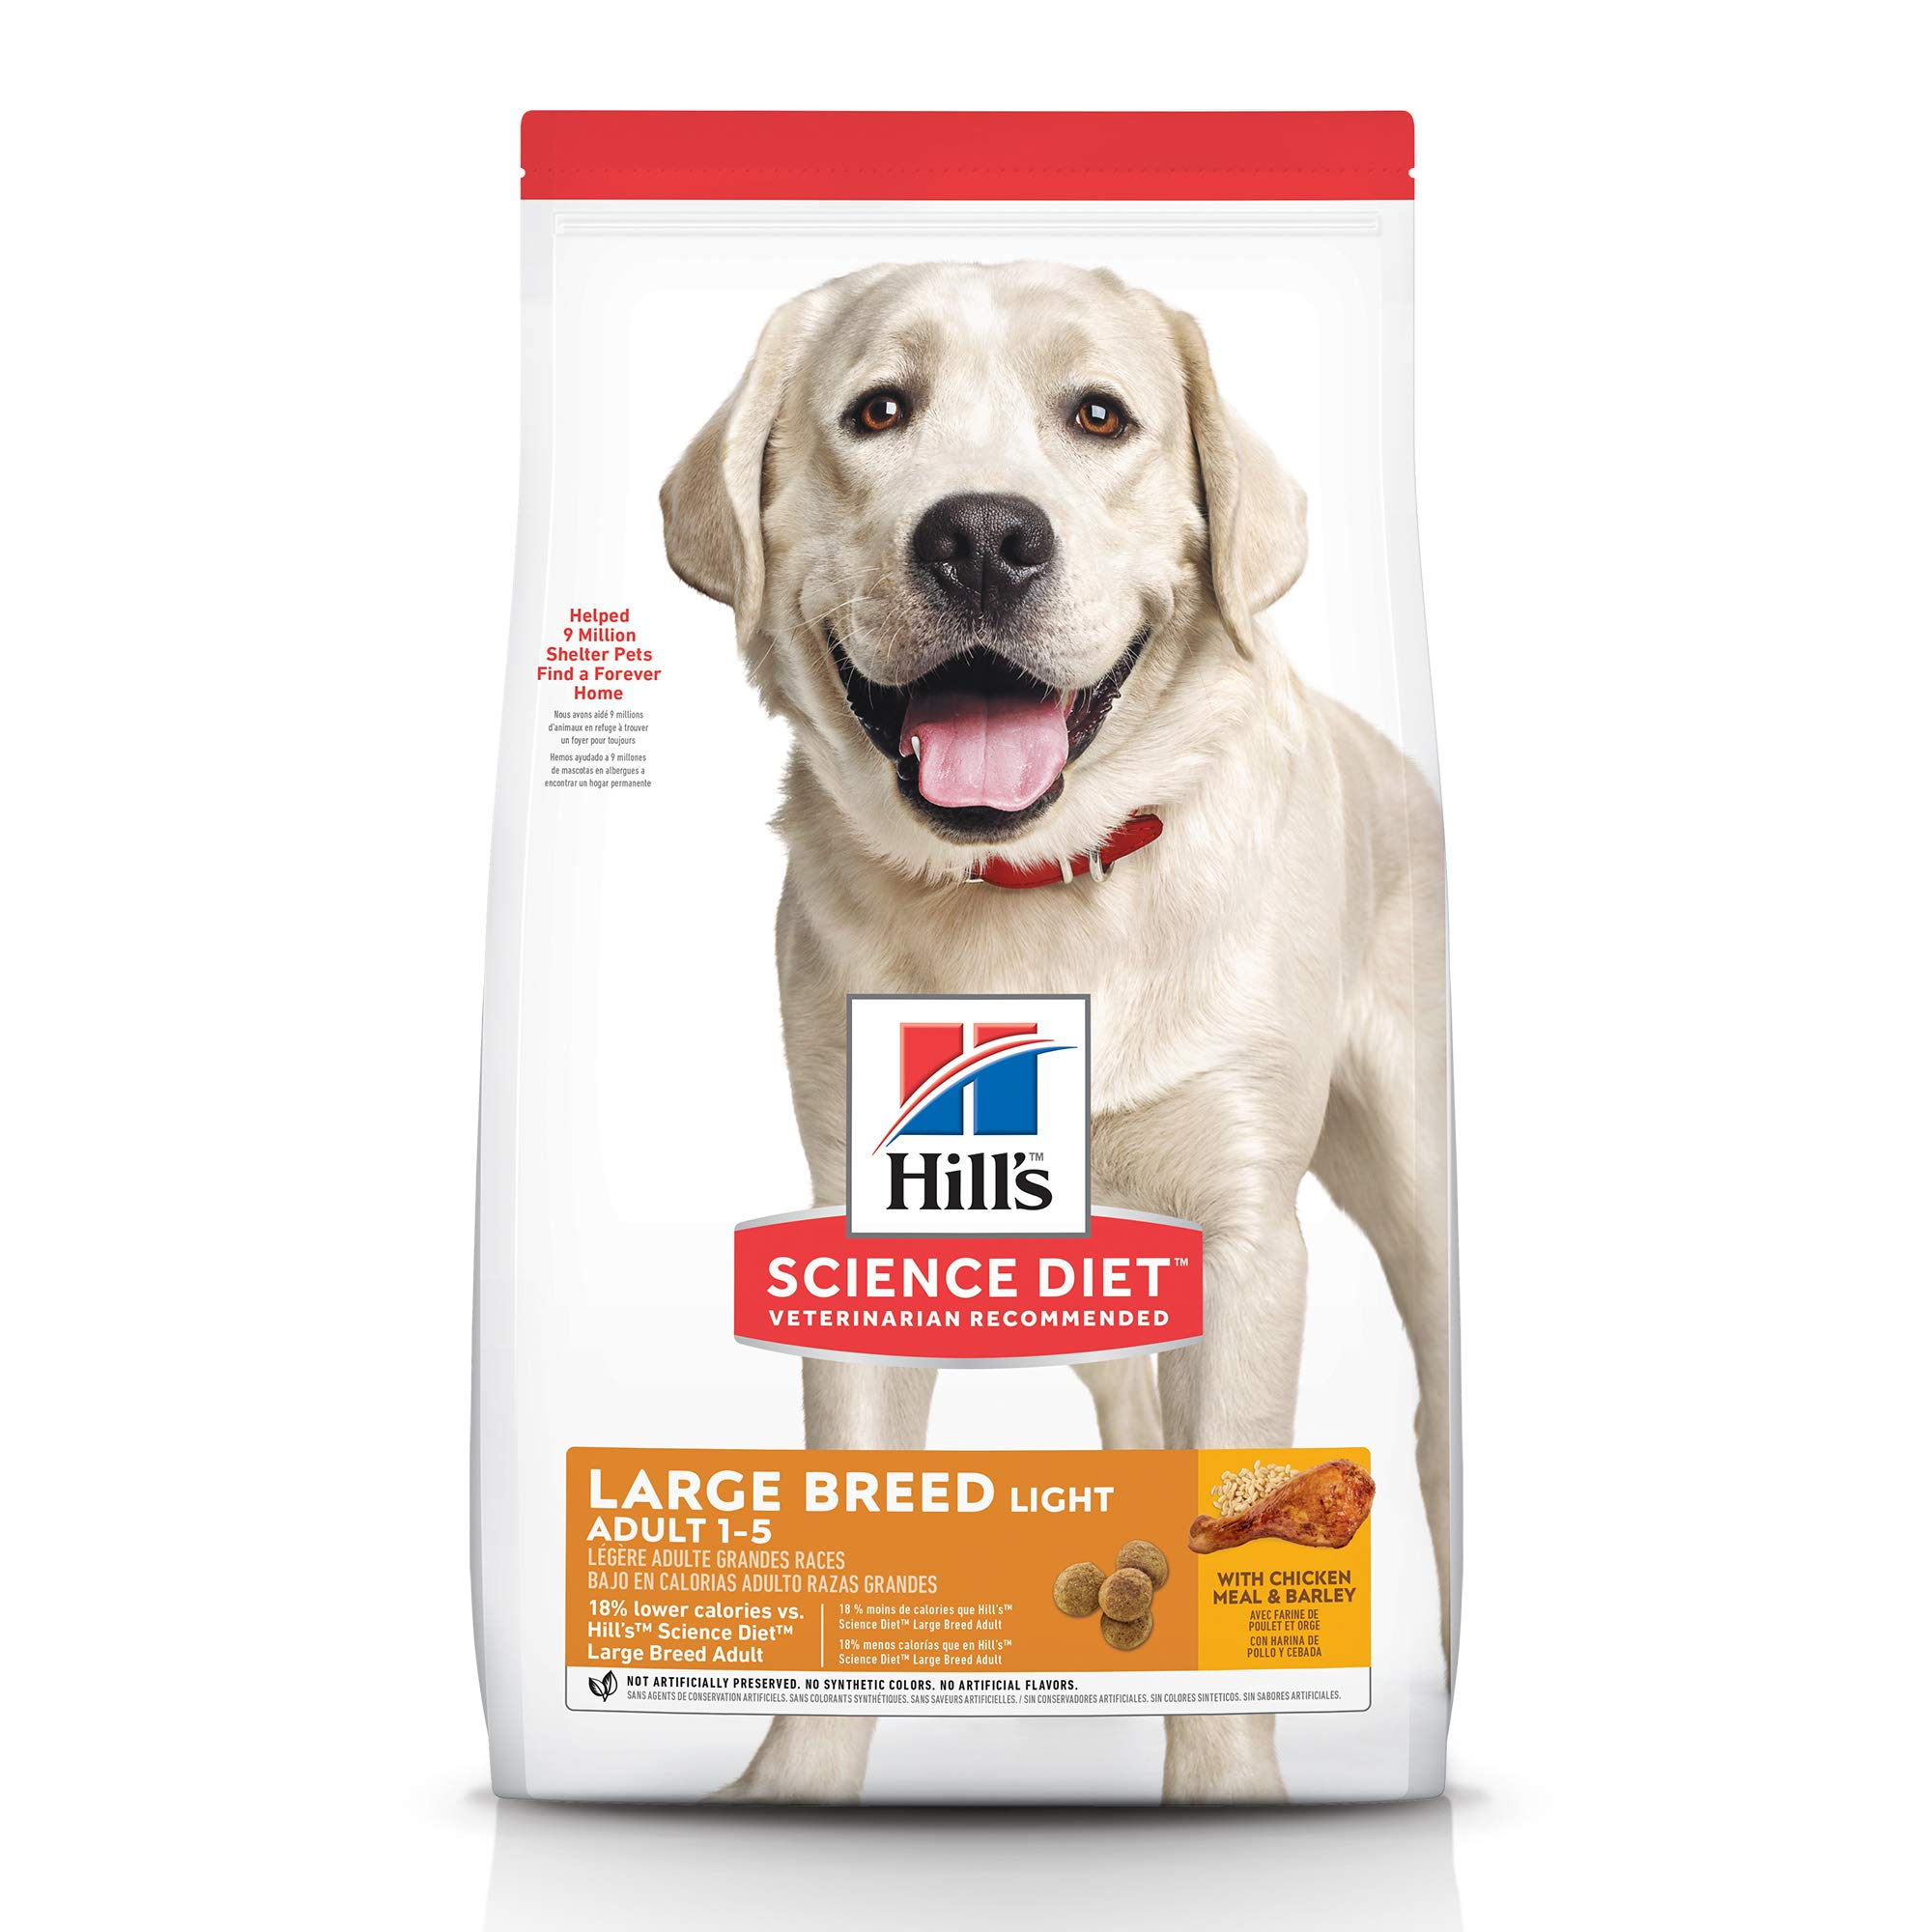 Hill's Science Diet Dry Dog Food, Adult, Large Breeds, Light, Chicken Meal & Barley Recipe for Healthy Weight & Weight Management, 30 lb Bag by Hill's Science Diet (Image #1)